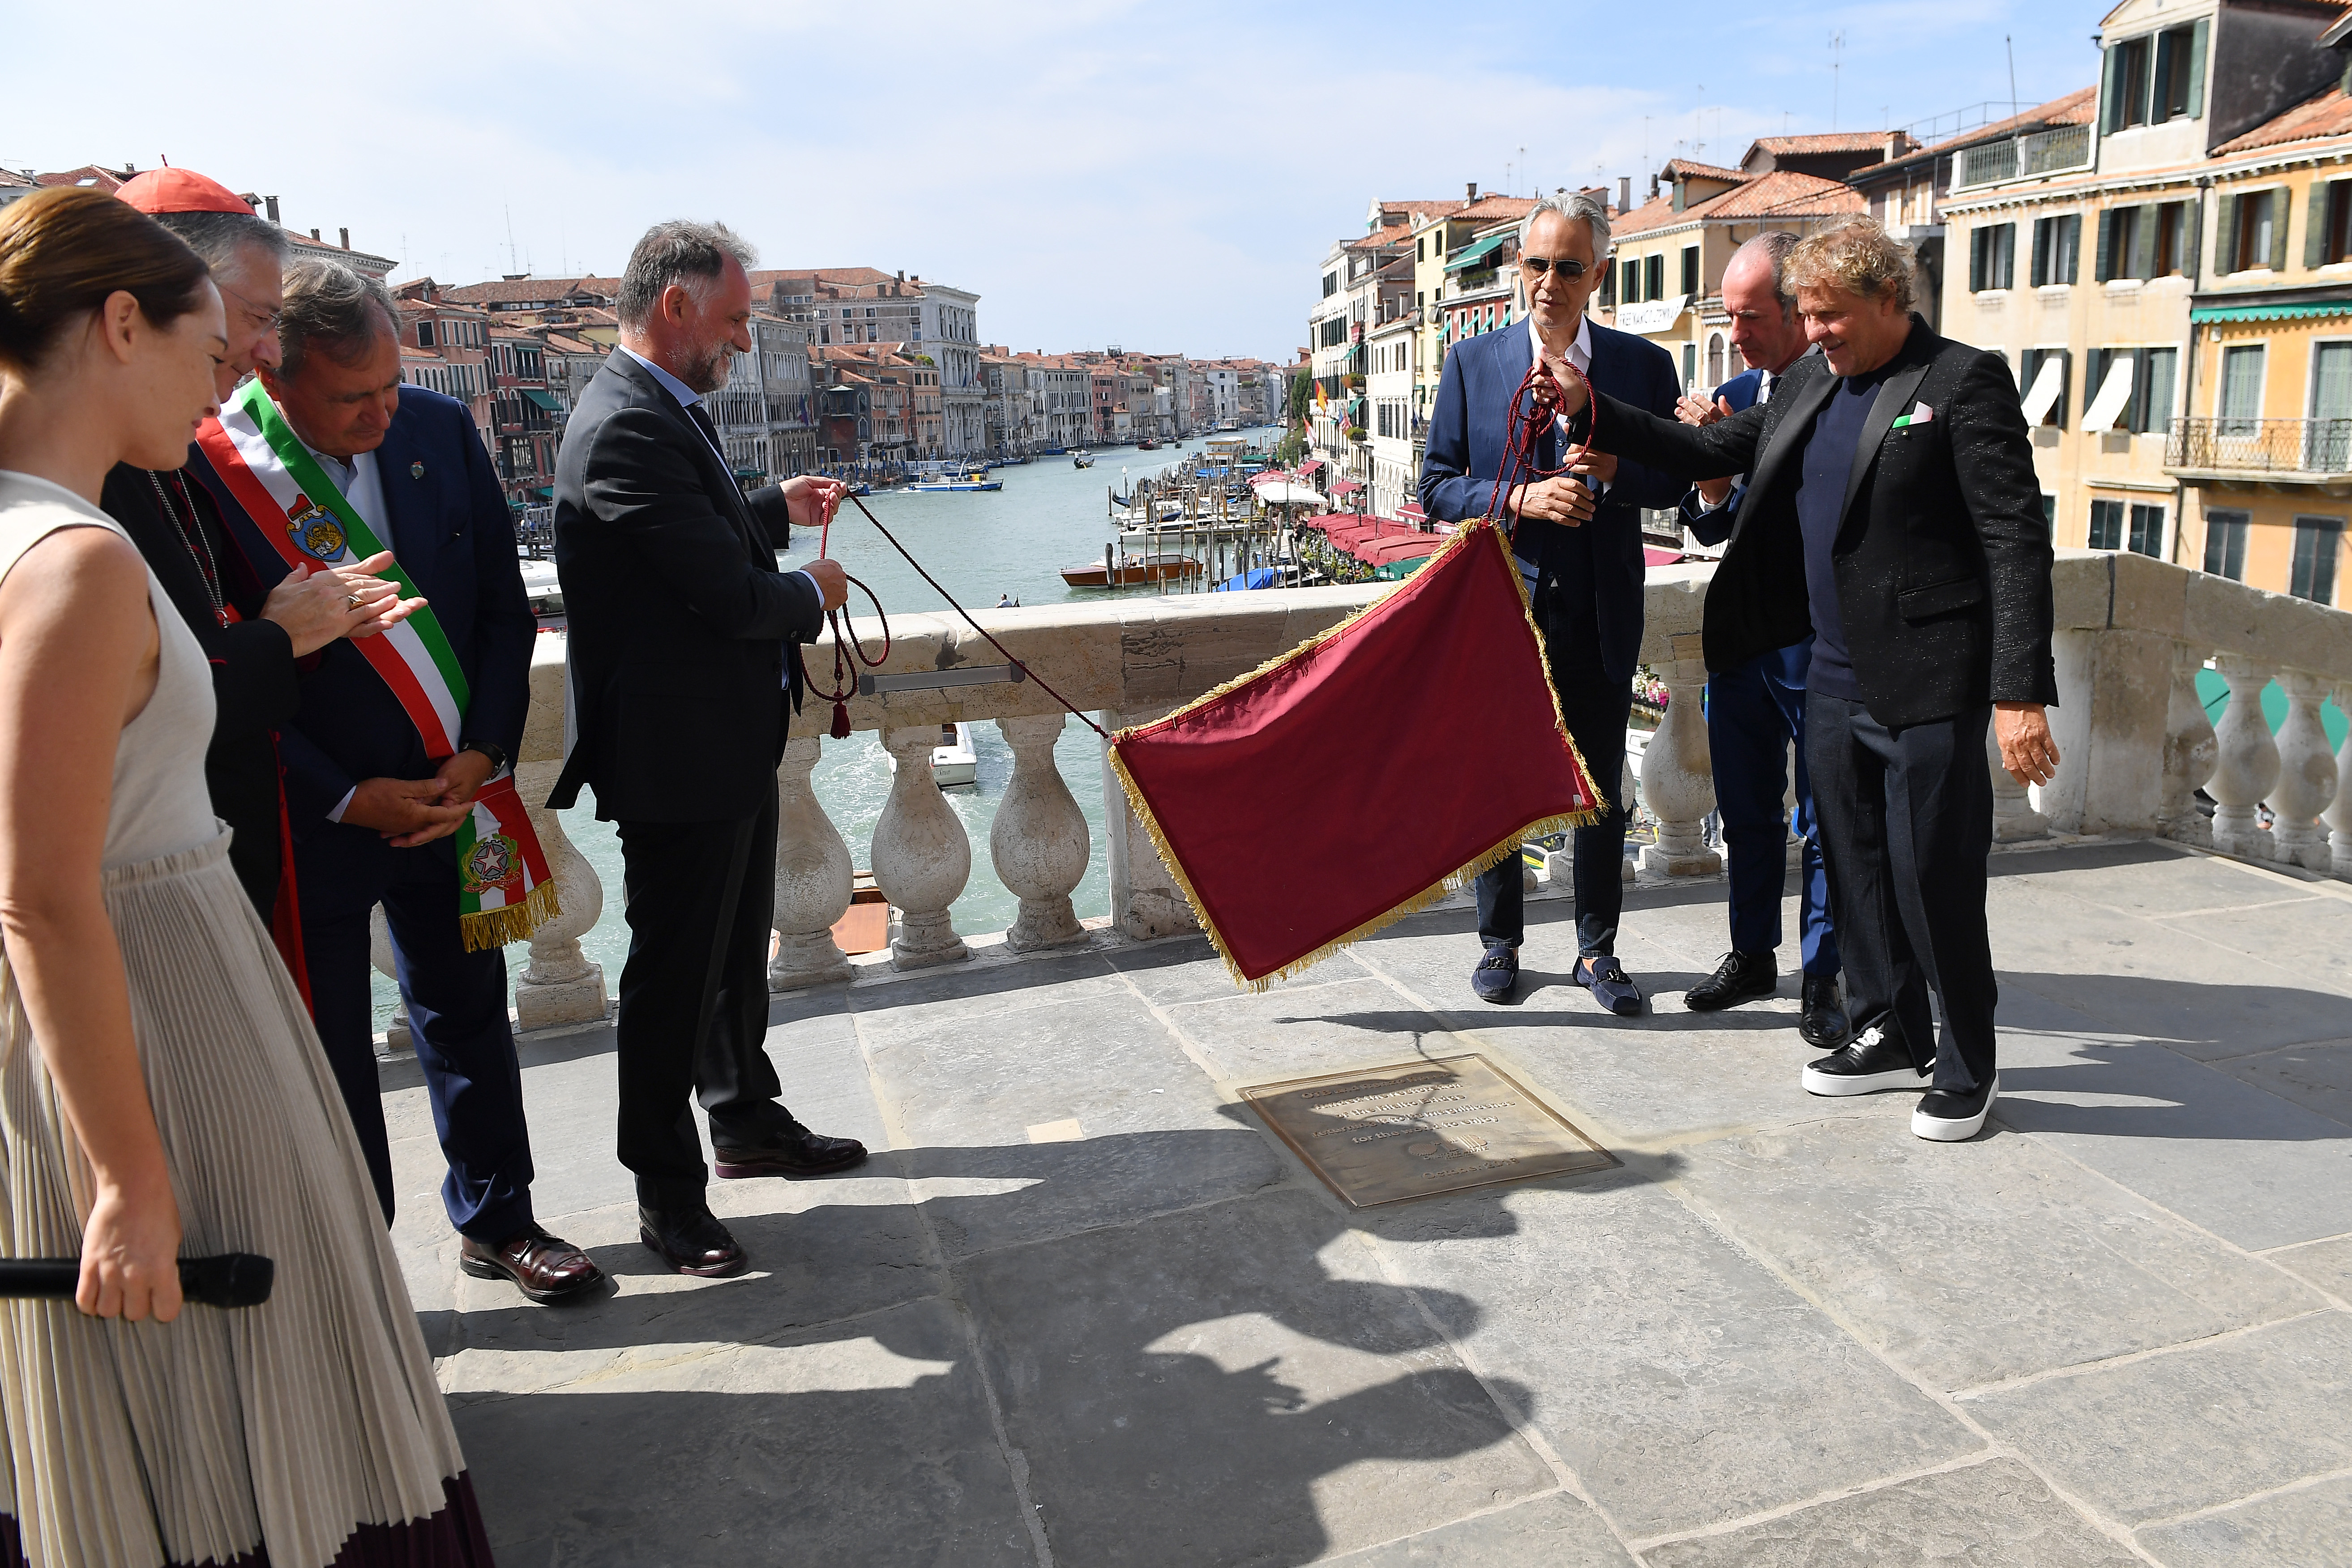 VENICE, ITALY - SEPTEMBER 07: attend the Inauguration of Rialto Bridge after OTB Restoration Works on September 07, 2021 in Venice, Italy. (Photo by Jacopo M. Raule/Getty Images for OTB)